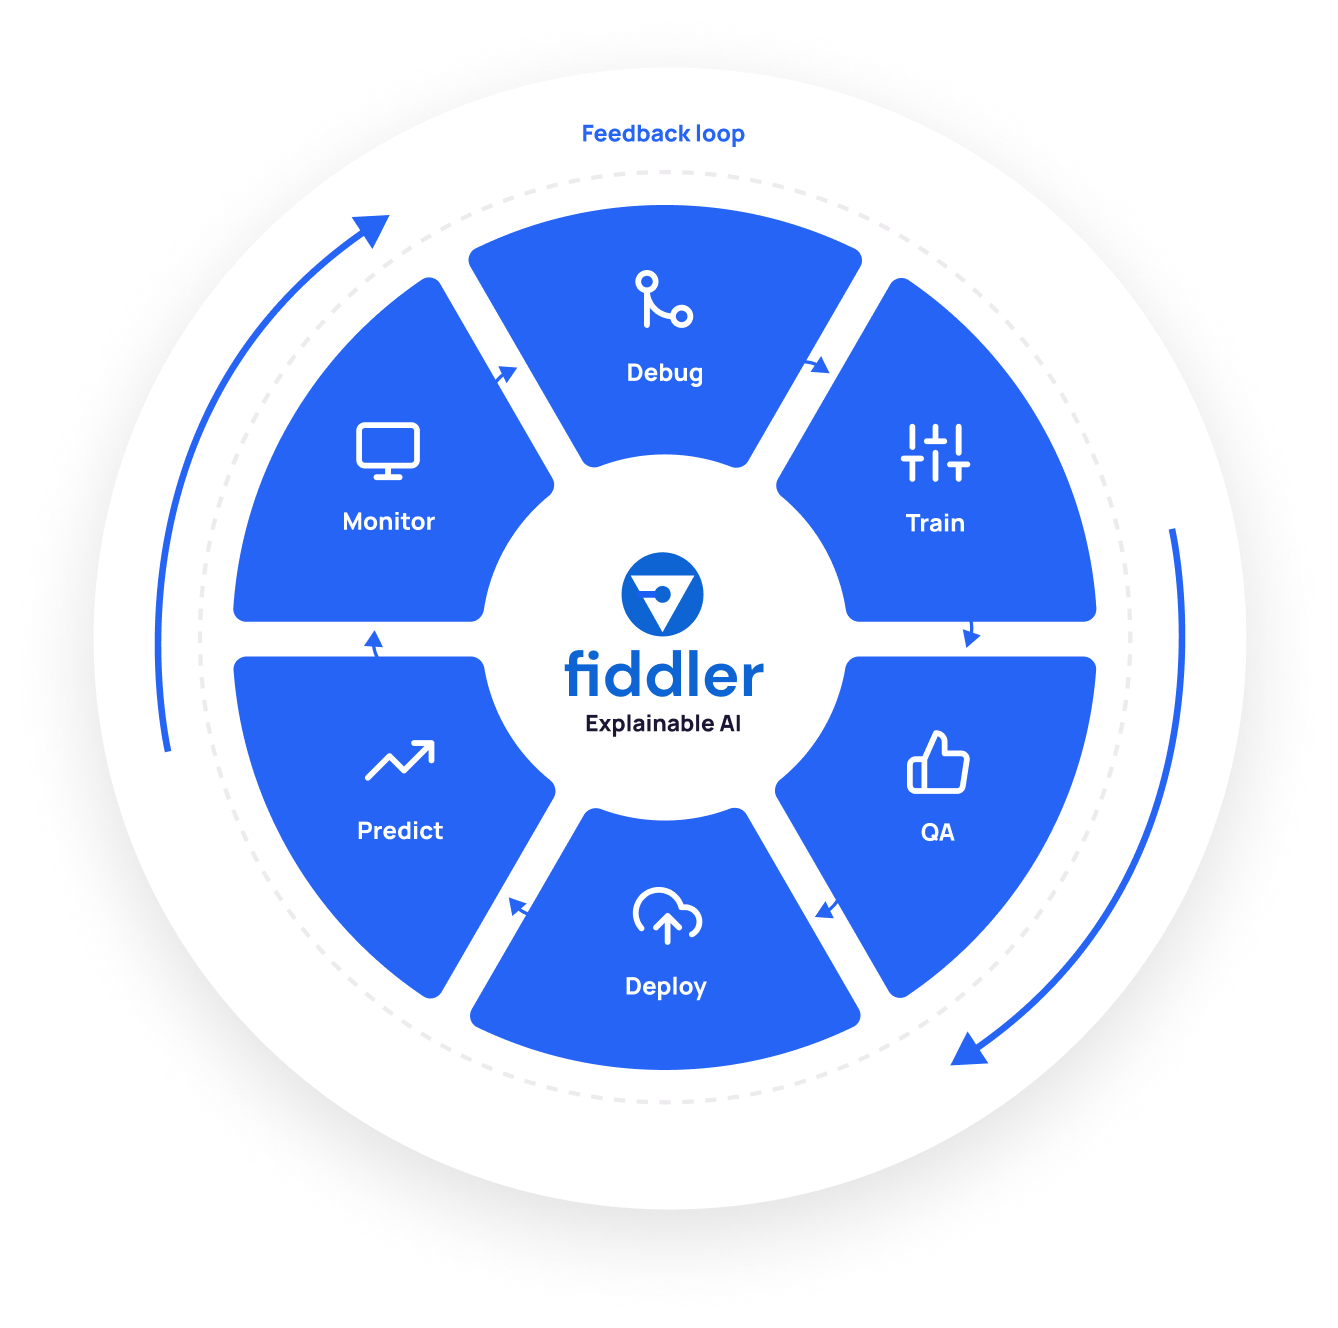 An illustration of Fiddler's Explainable AI Feedback Loop. Fiddler uses explainable AI to provide useful insights throughout the lifecycle of machine learning models - train, QA, deploy, predict, monitor, and debug.